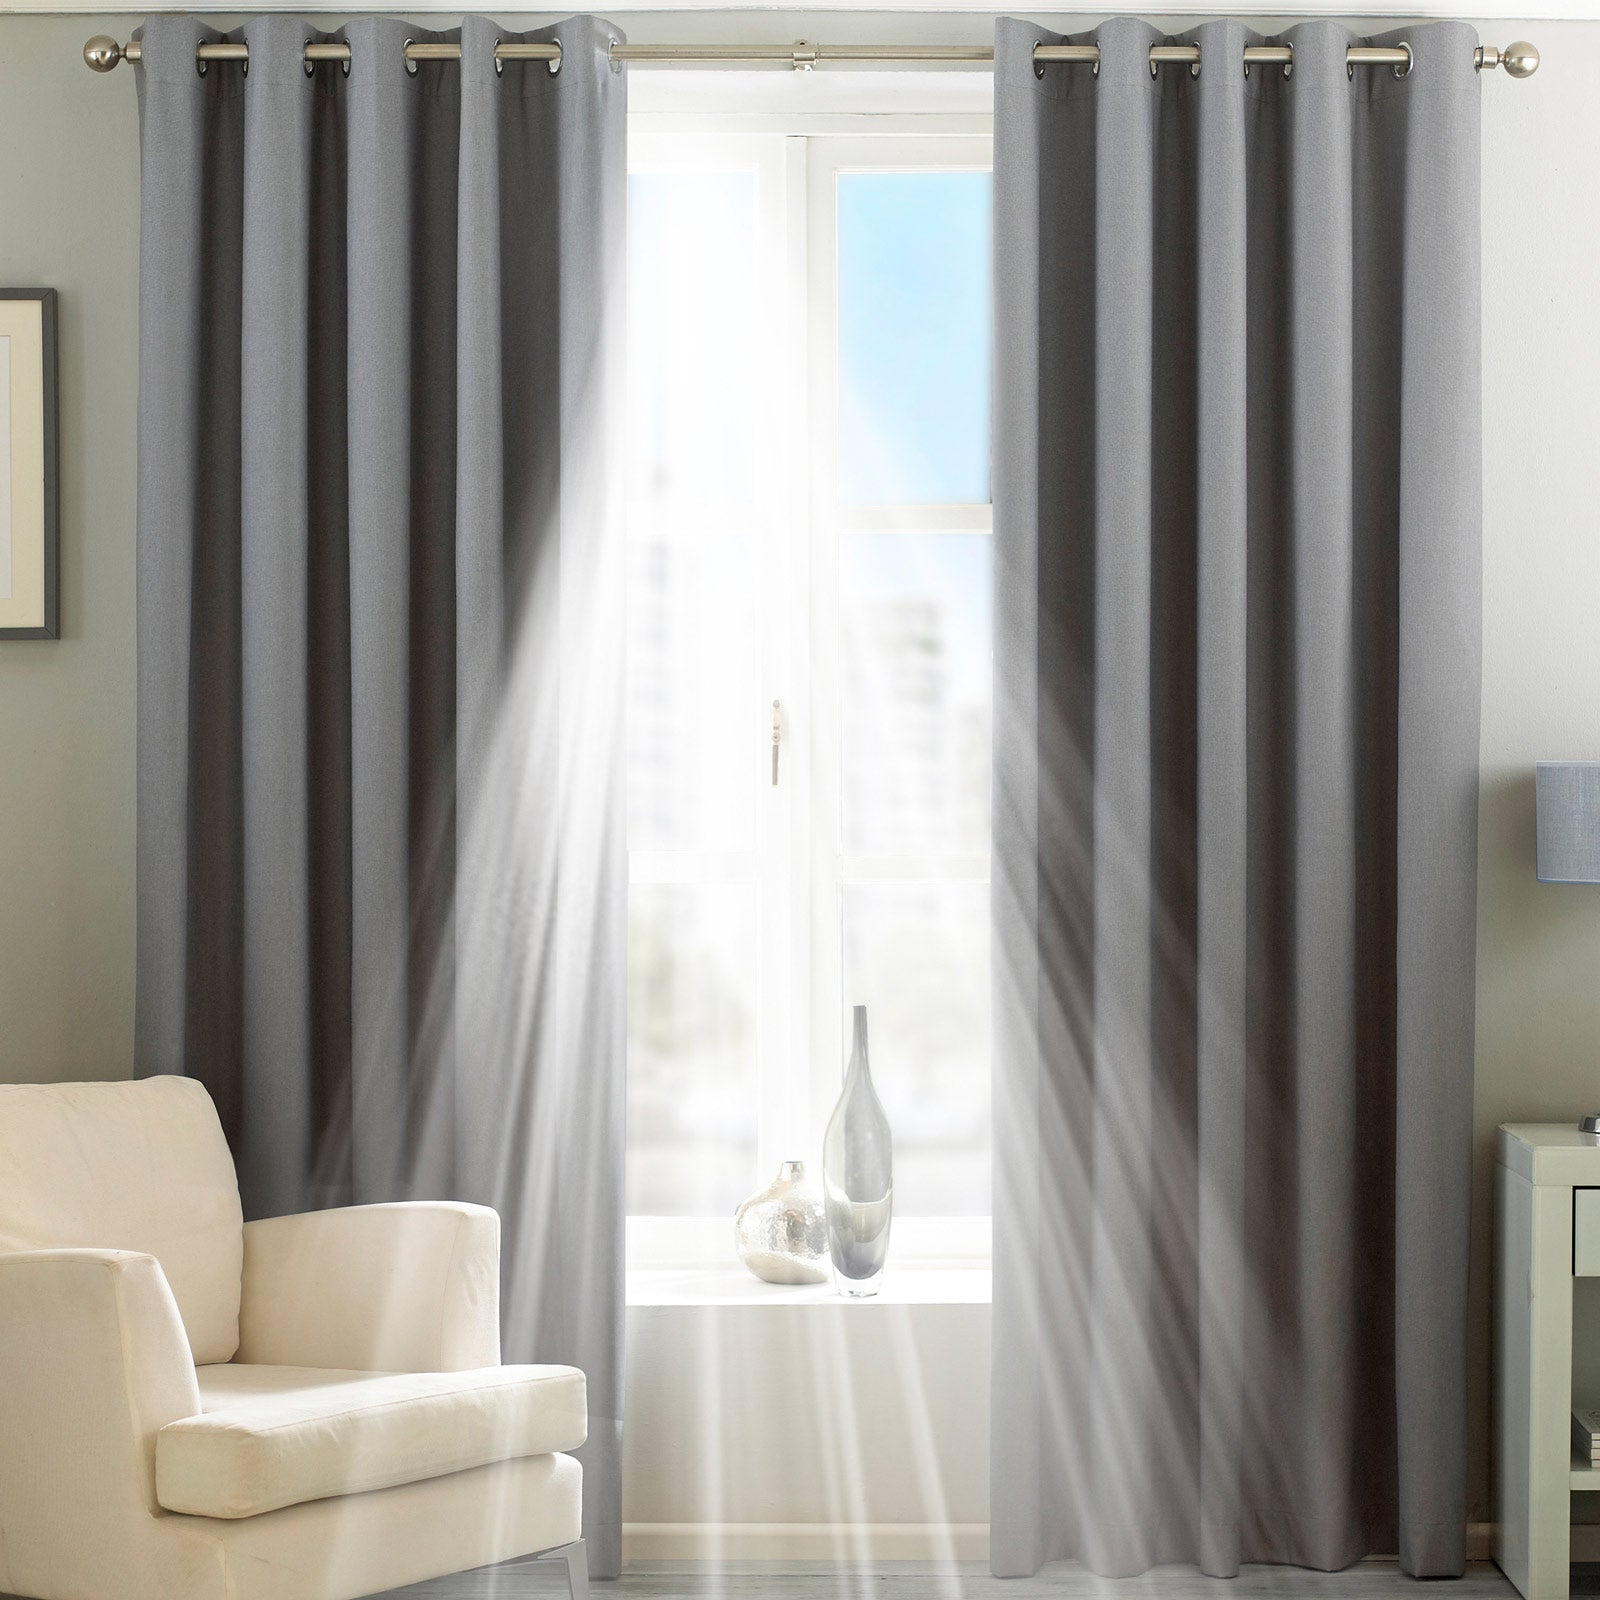 Twilight Thermal Blackout Eyelet Curtains Silver - 46'' x 54'' - Ideal Textiles